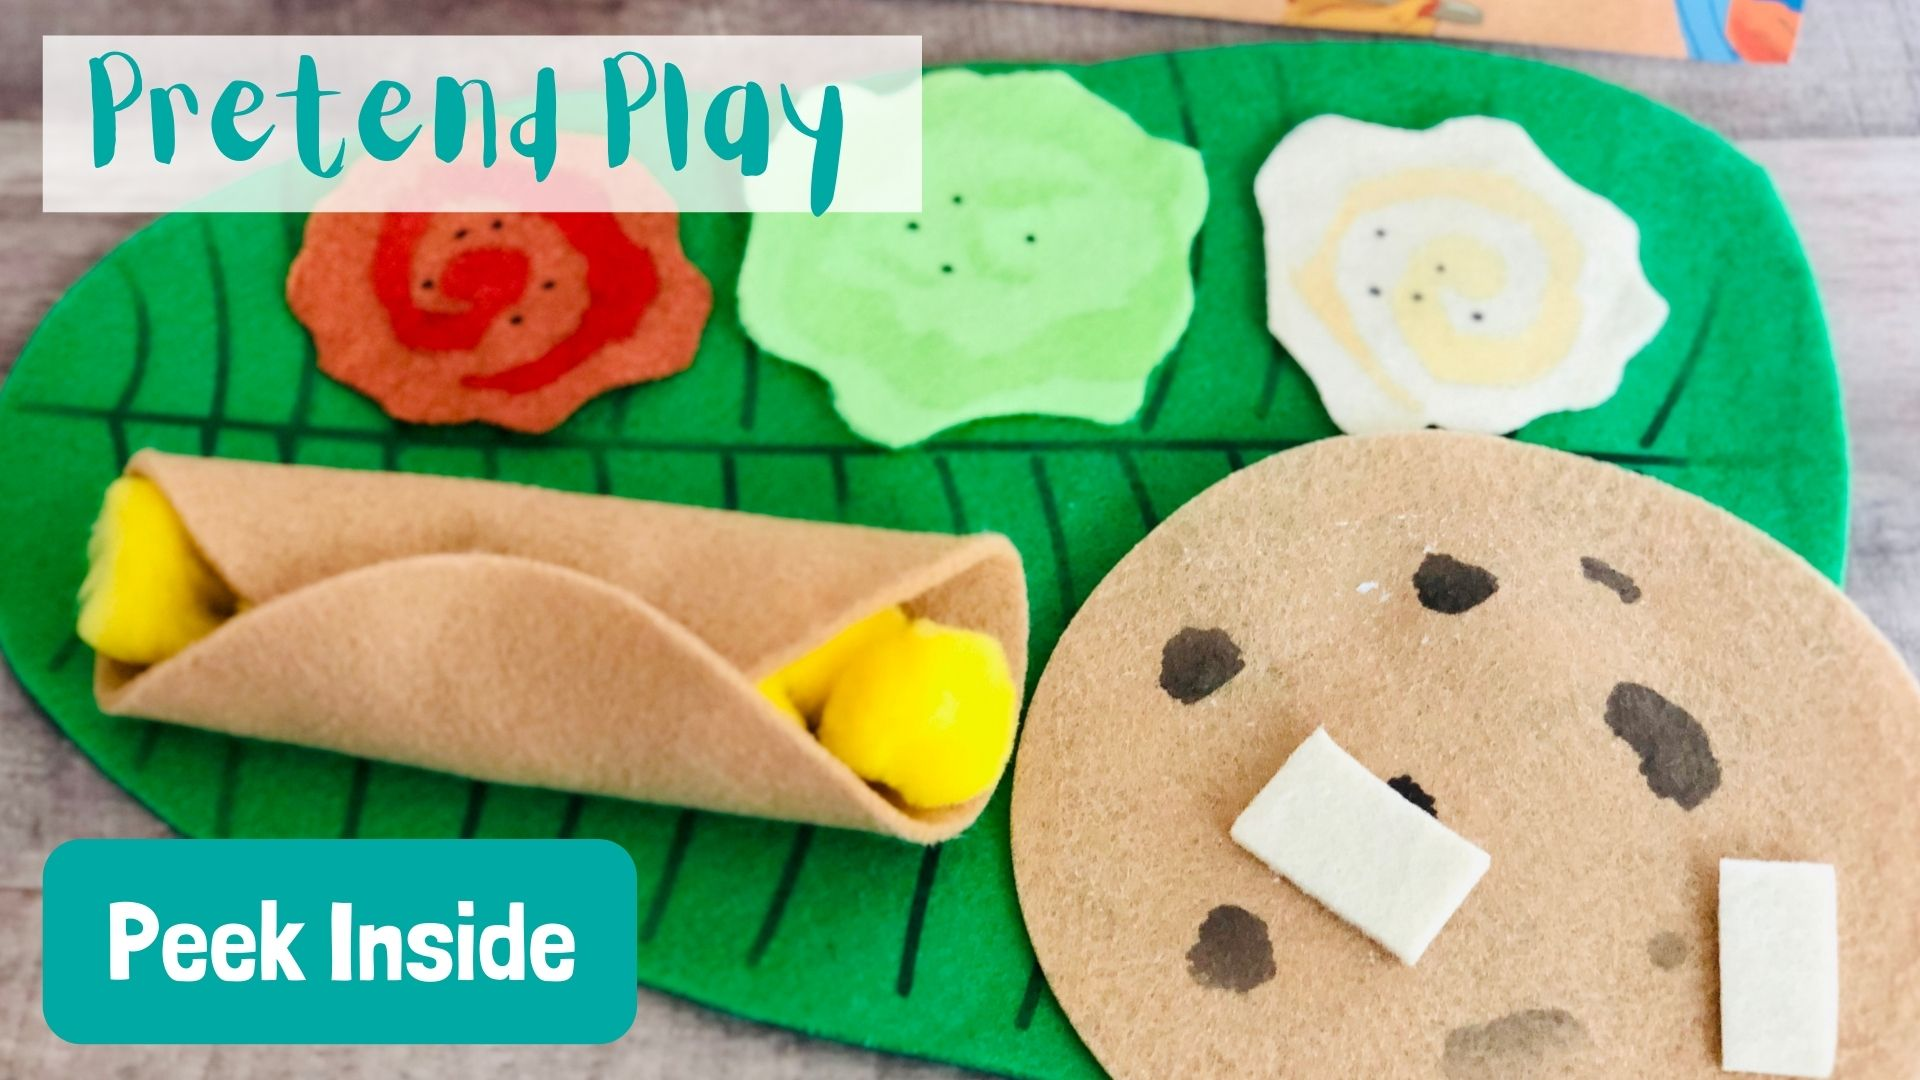 Pretend Play Indian food